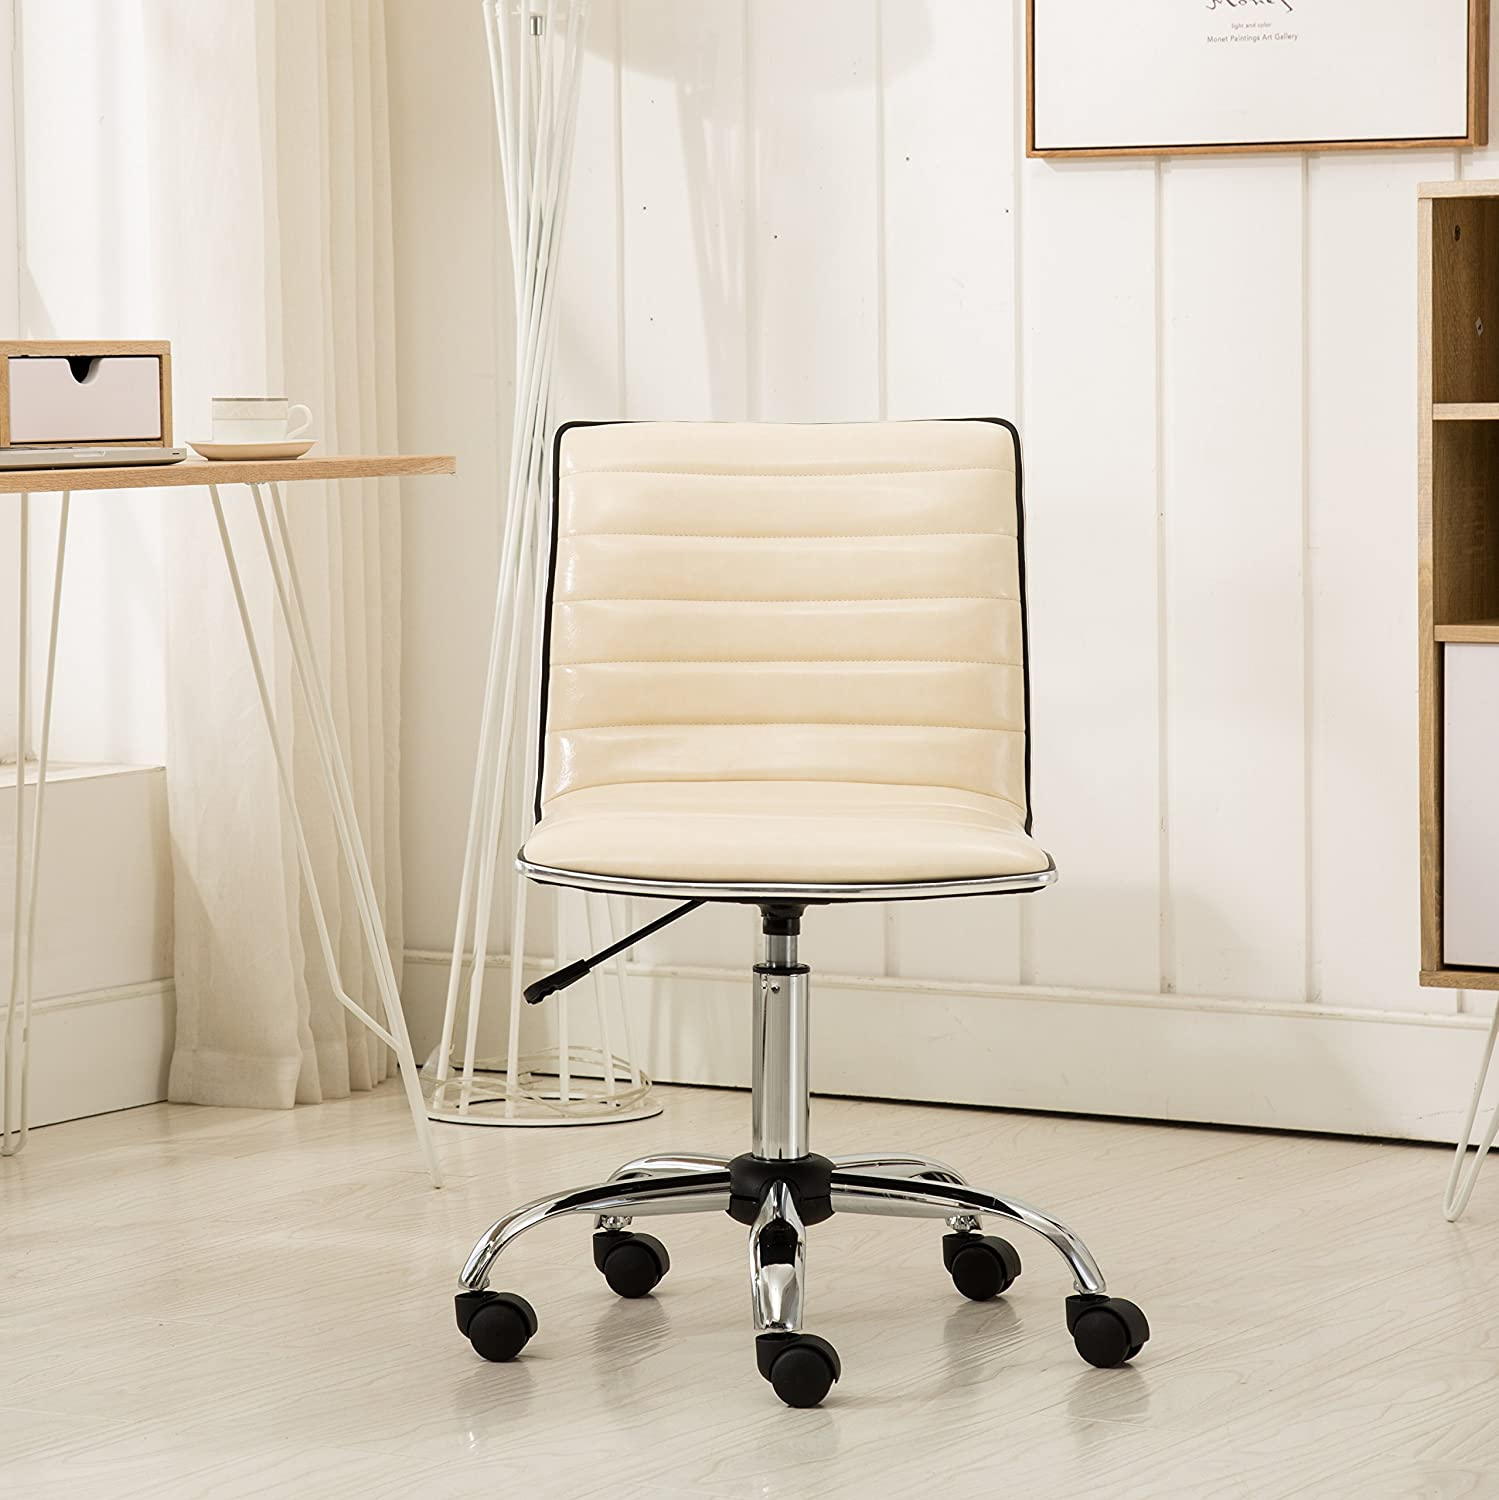 Roundhill Furniture Fremo Chromel Adjustable Air Lift Office Chair in Beige